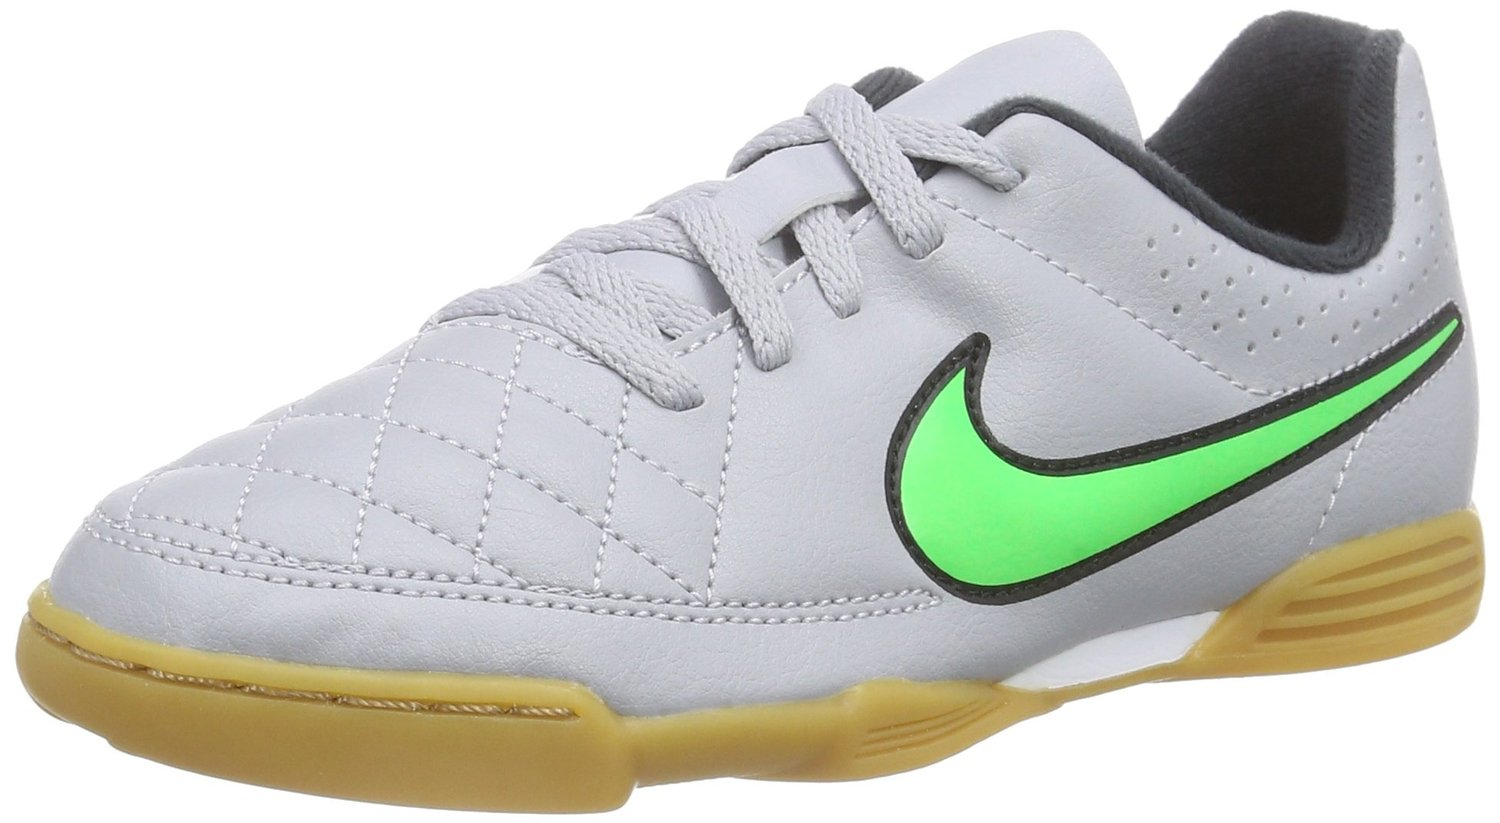 the best attitude ec40d 7438f Get Quotations · NIKE JR Tiempo Rio II IC Soccer Shoes Size 5.5 Y